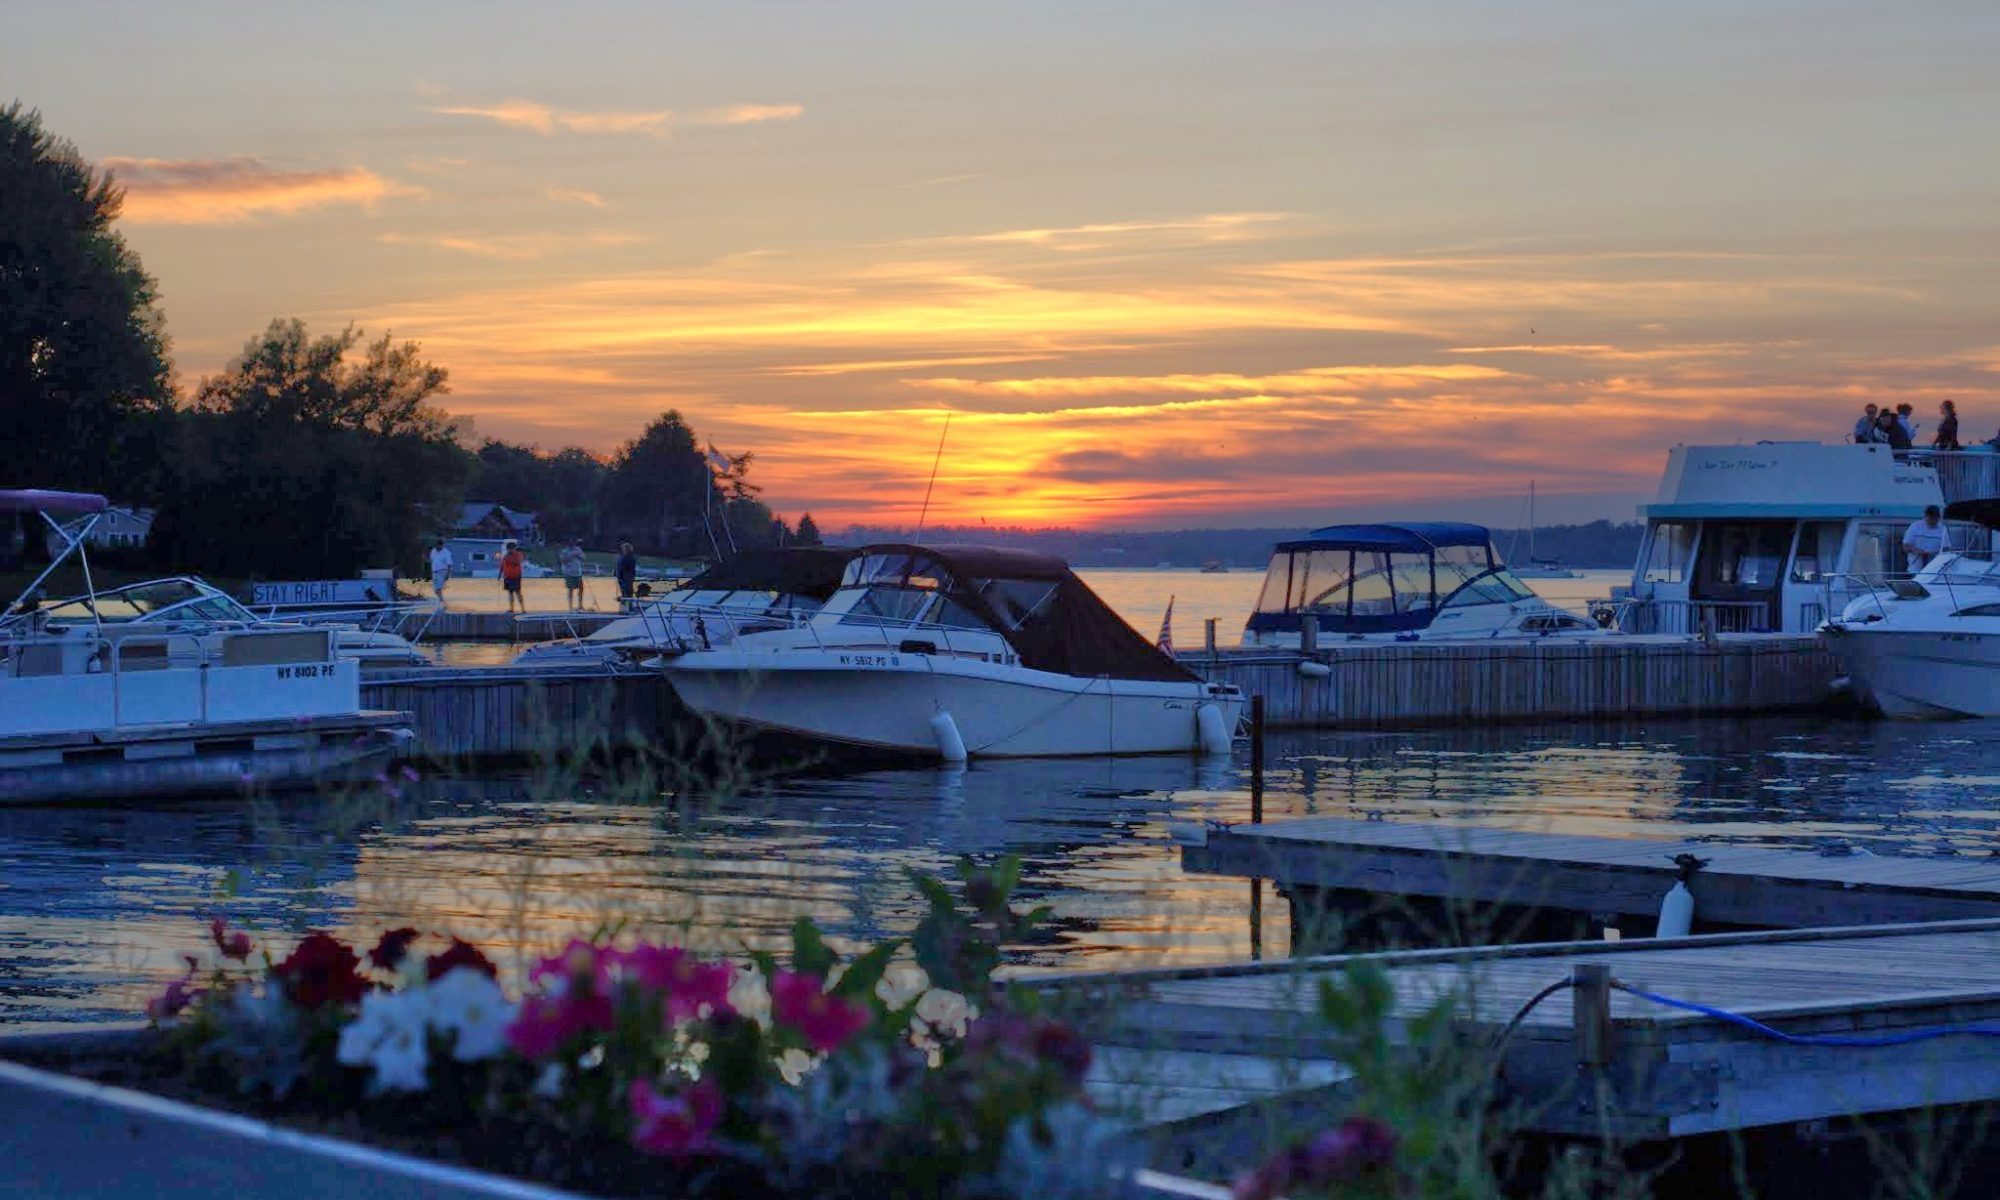 Bayside Marina in Clayton NY in 1000 Islands